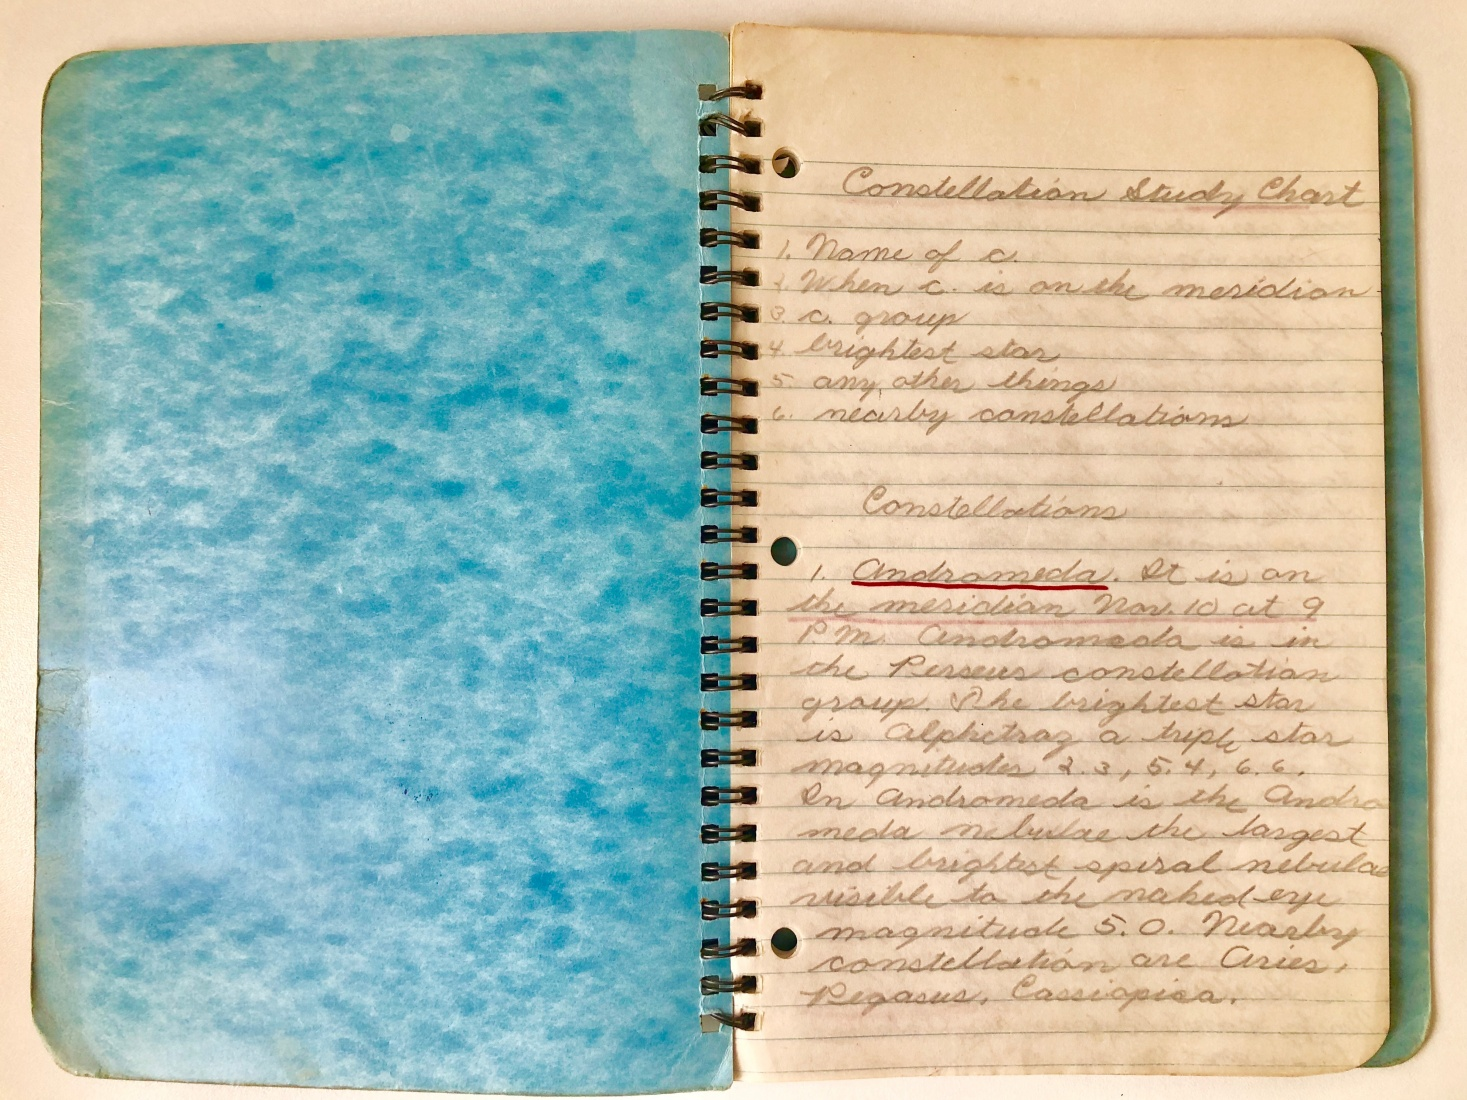 The first page of the book on astronomy Mark and his brother were hoping to write at 12 years old. The top of the page clearly shows the methodology.